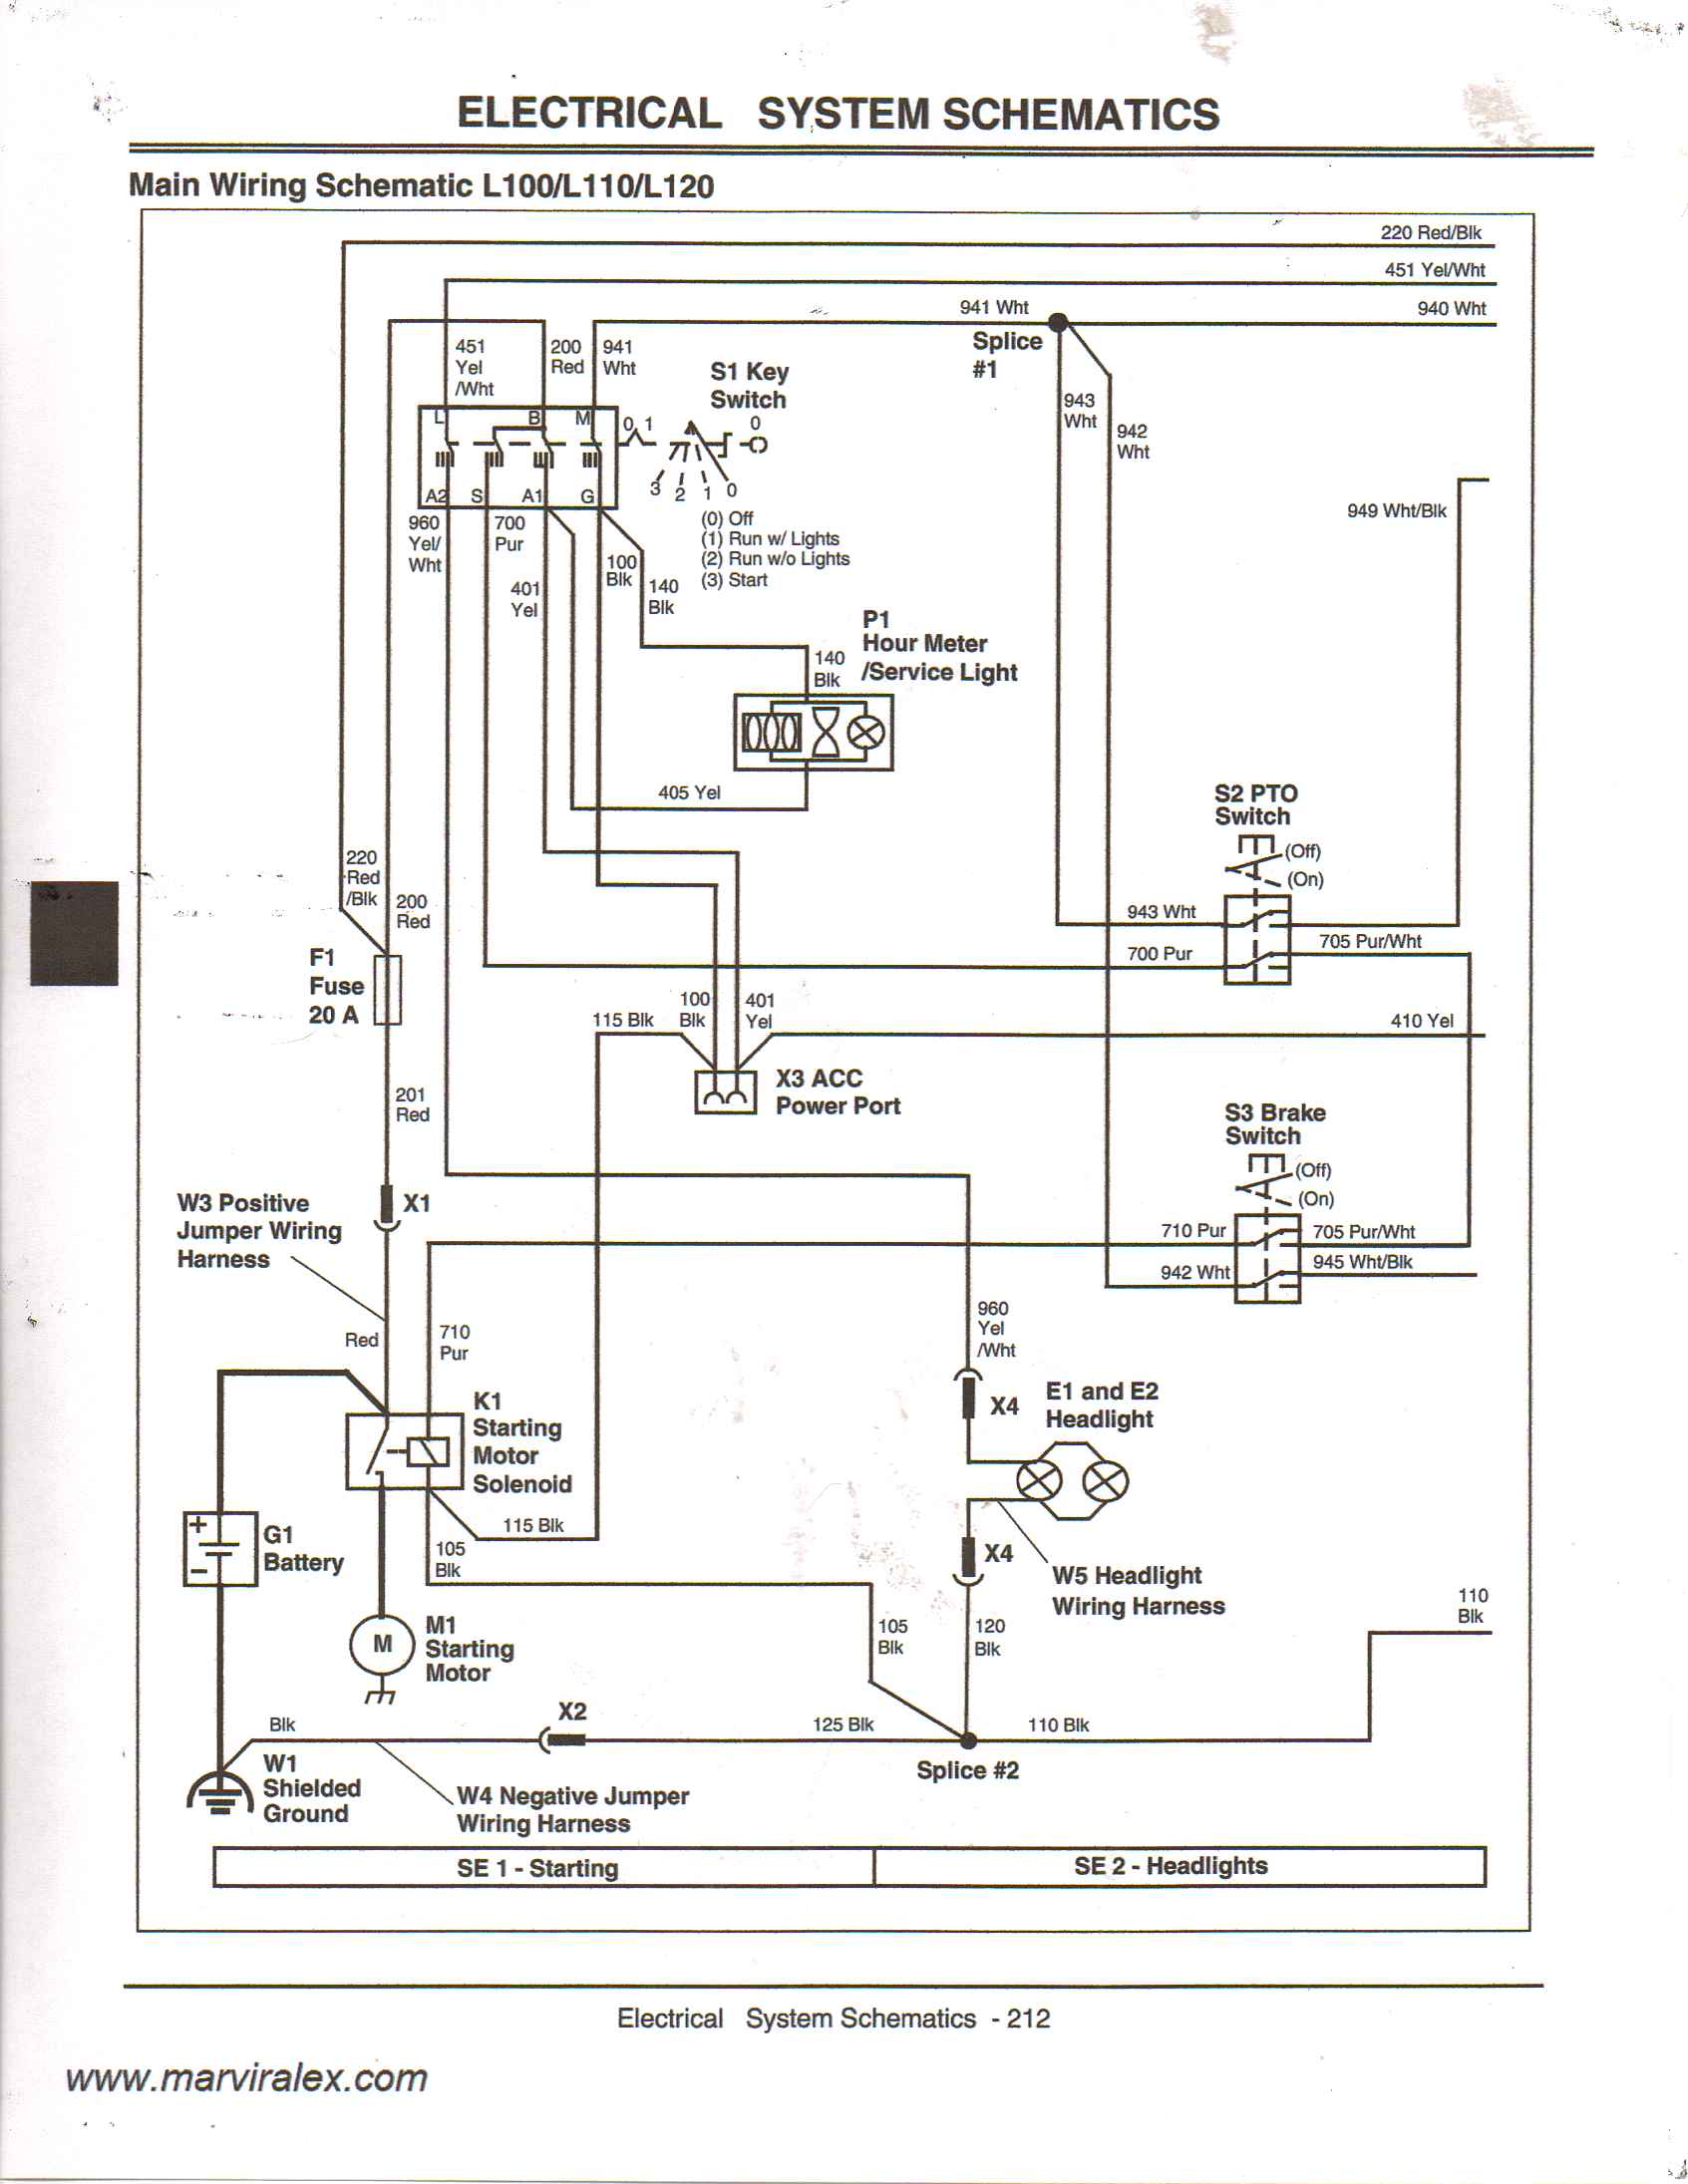 John Deere L120 Mower Wiring Diagram - Box Wiring Diagram on john deere electrical schematics, john deere 345 wiring-diagram, john deere 265 wiring diagram, john deere l110 wiring-diagram, john deere f925,